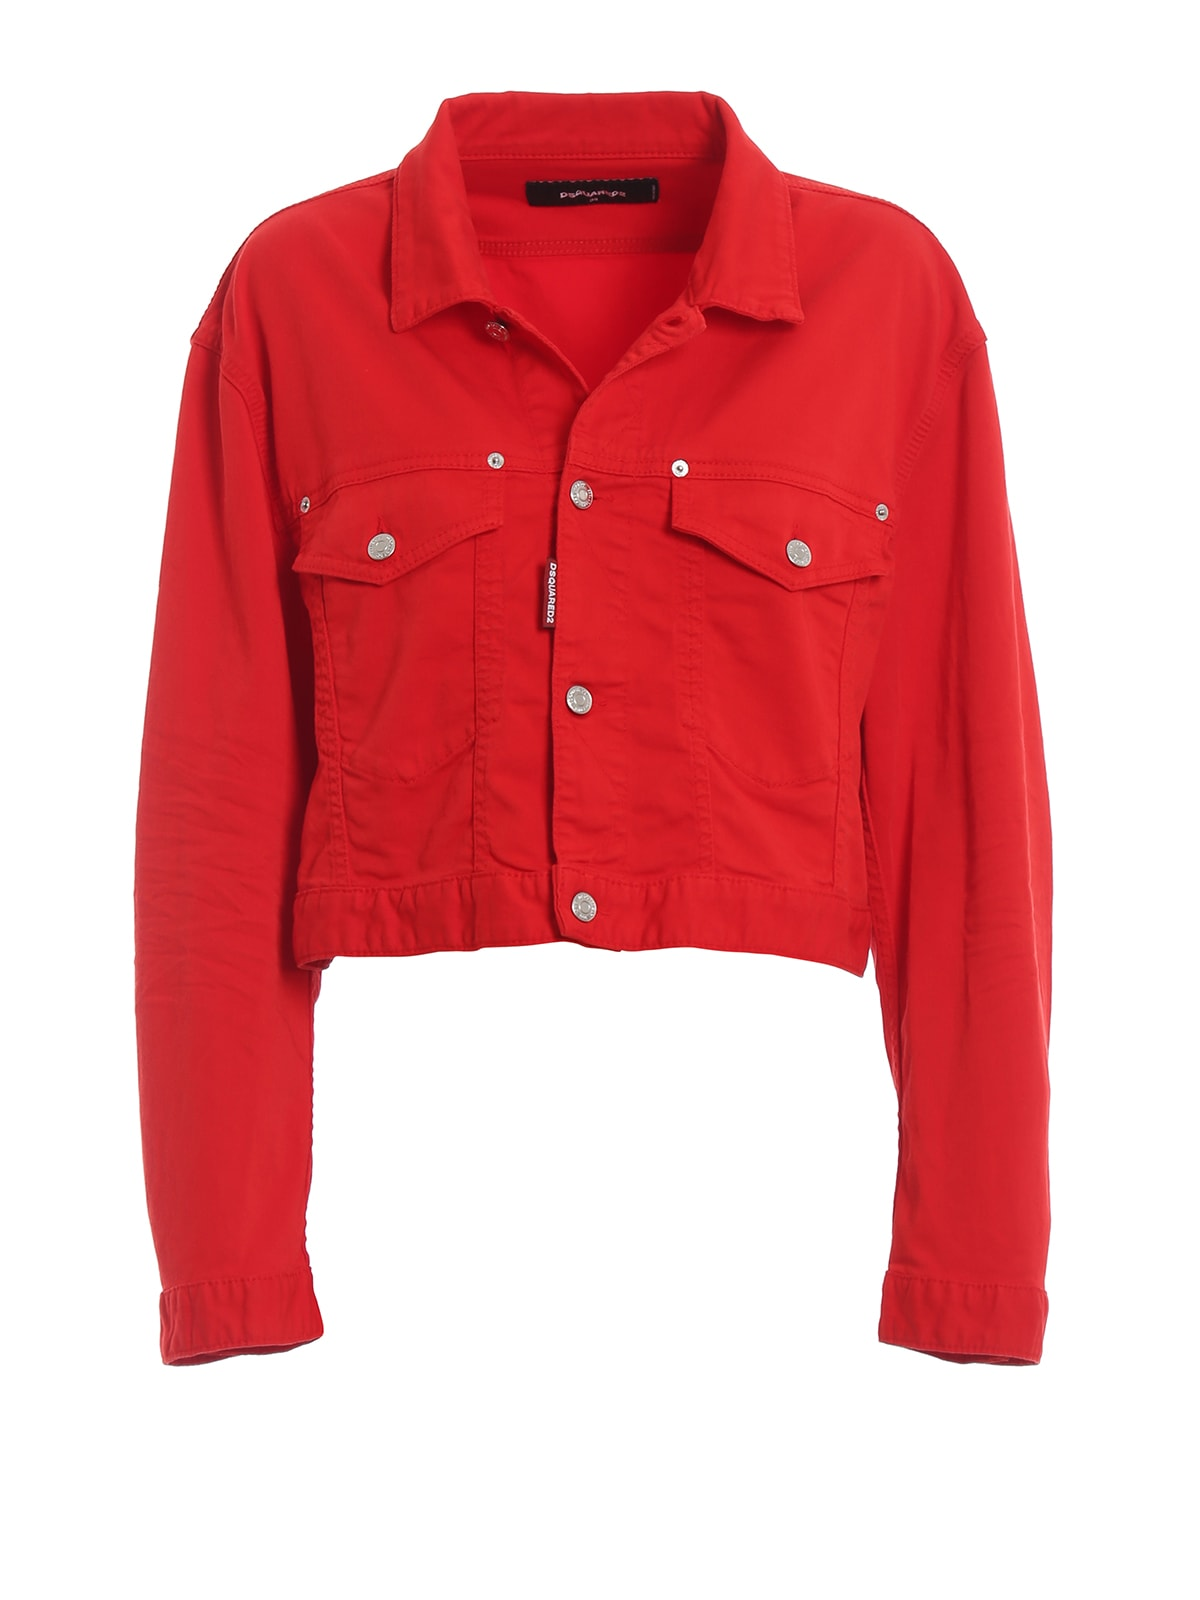 Dsquared2 Red Cotton Denim Cropped Jacket S75am0629s44531309